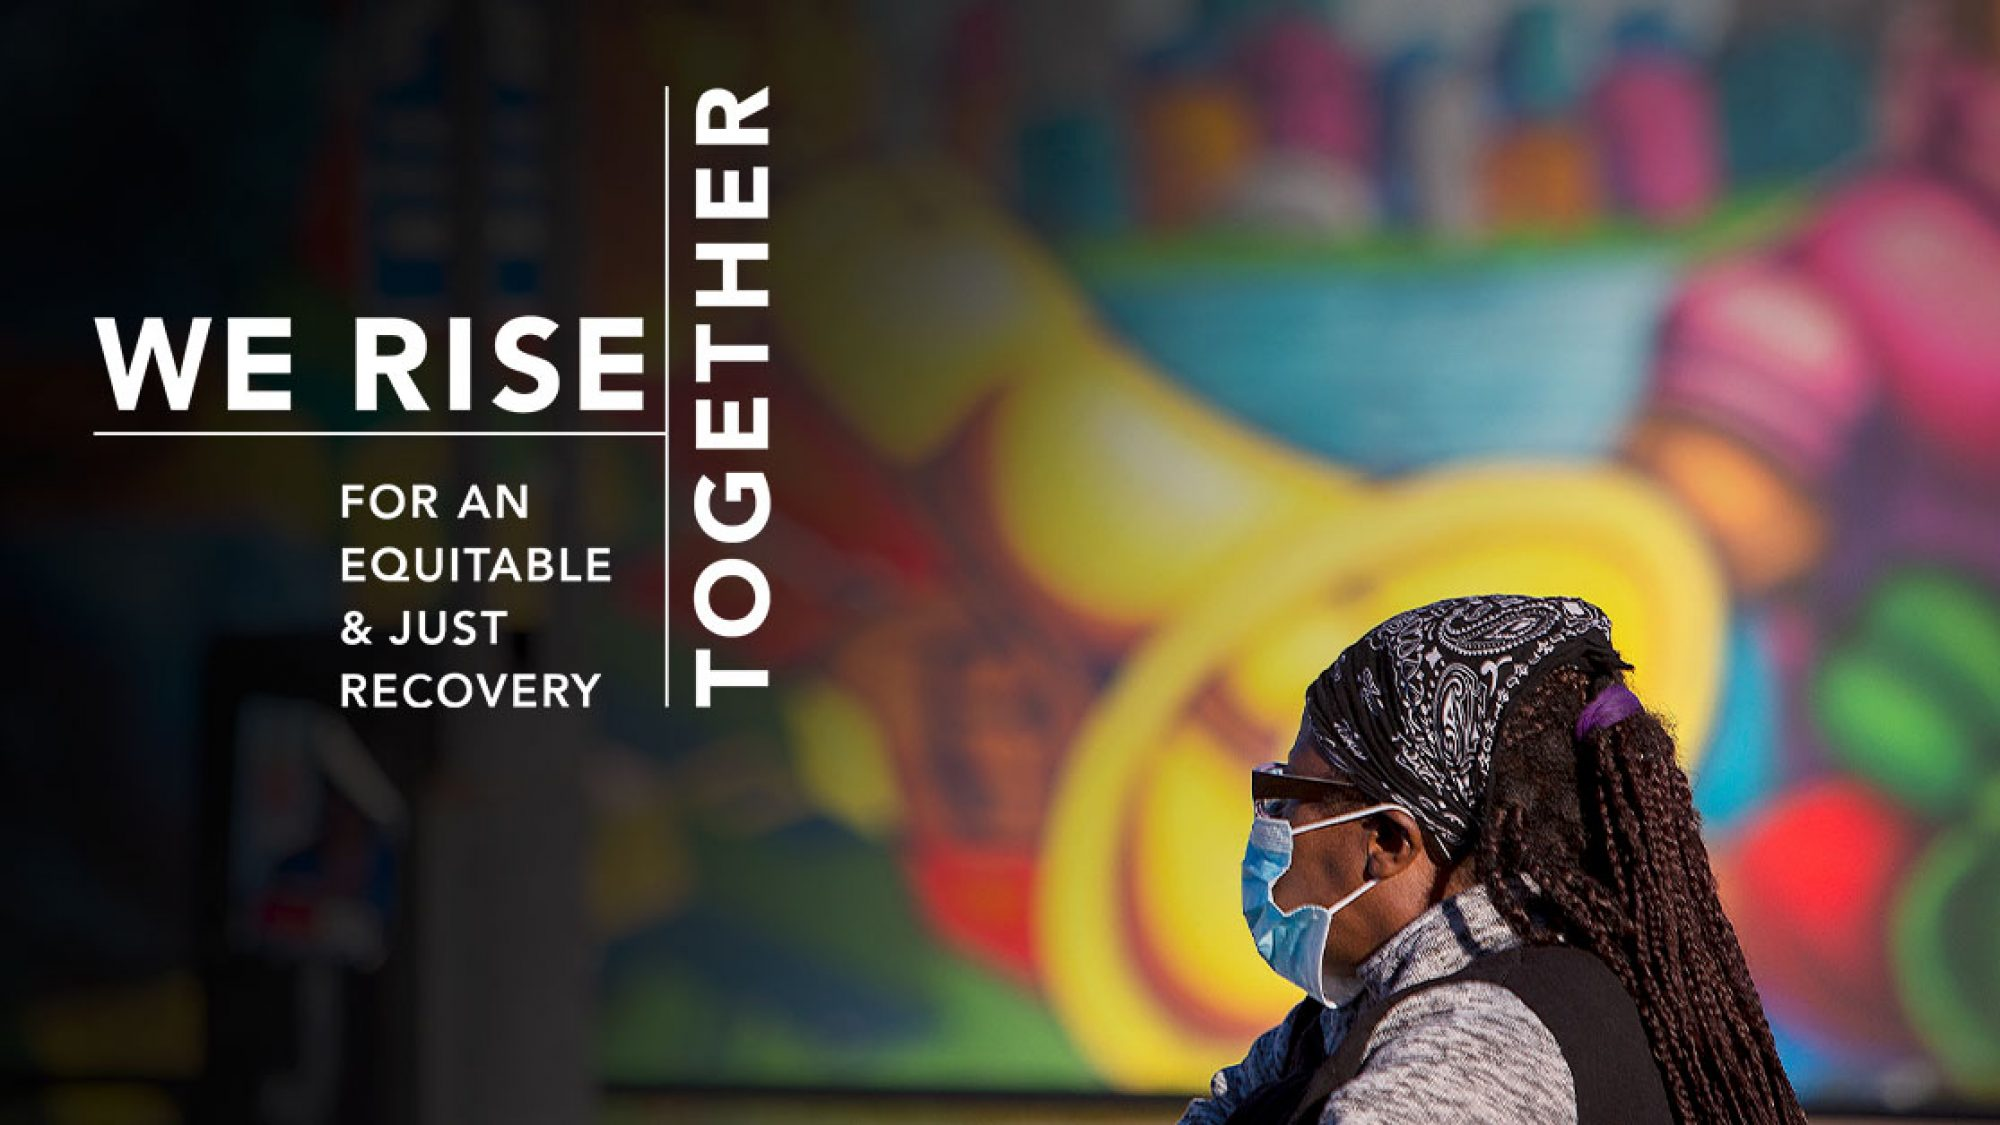 Black woman, masked, in front of a colorful mural. Overlay text says We rise together for an equitable and just recovery.